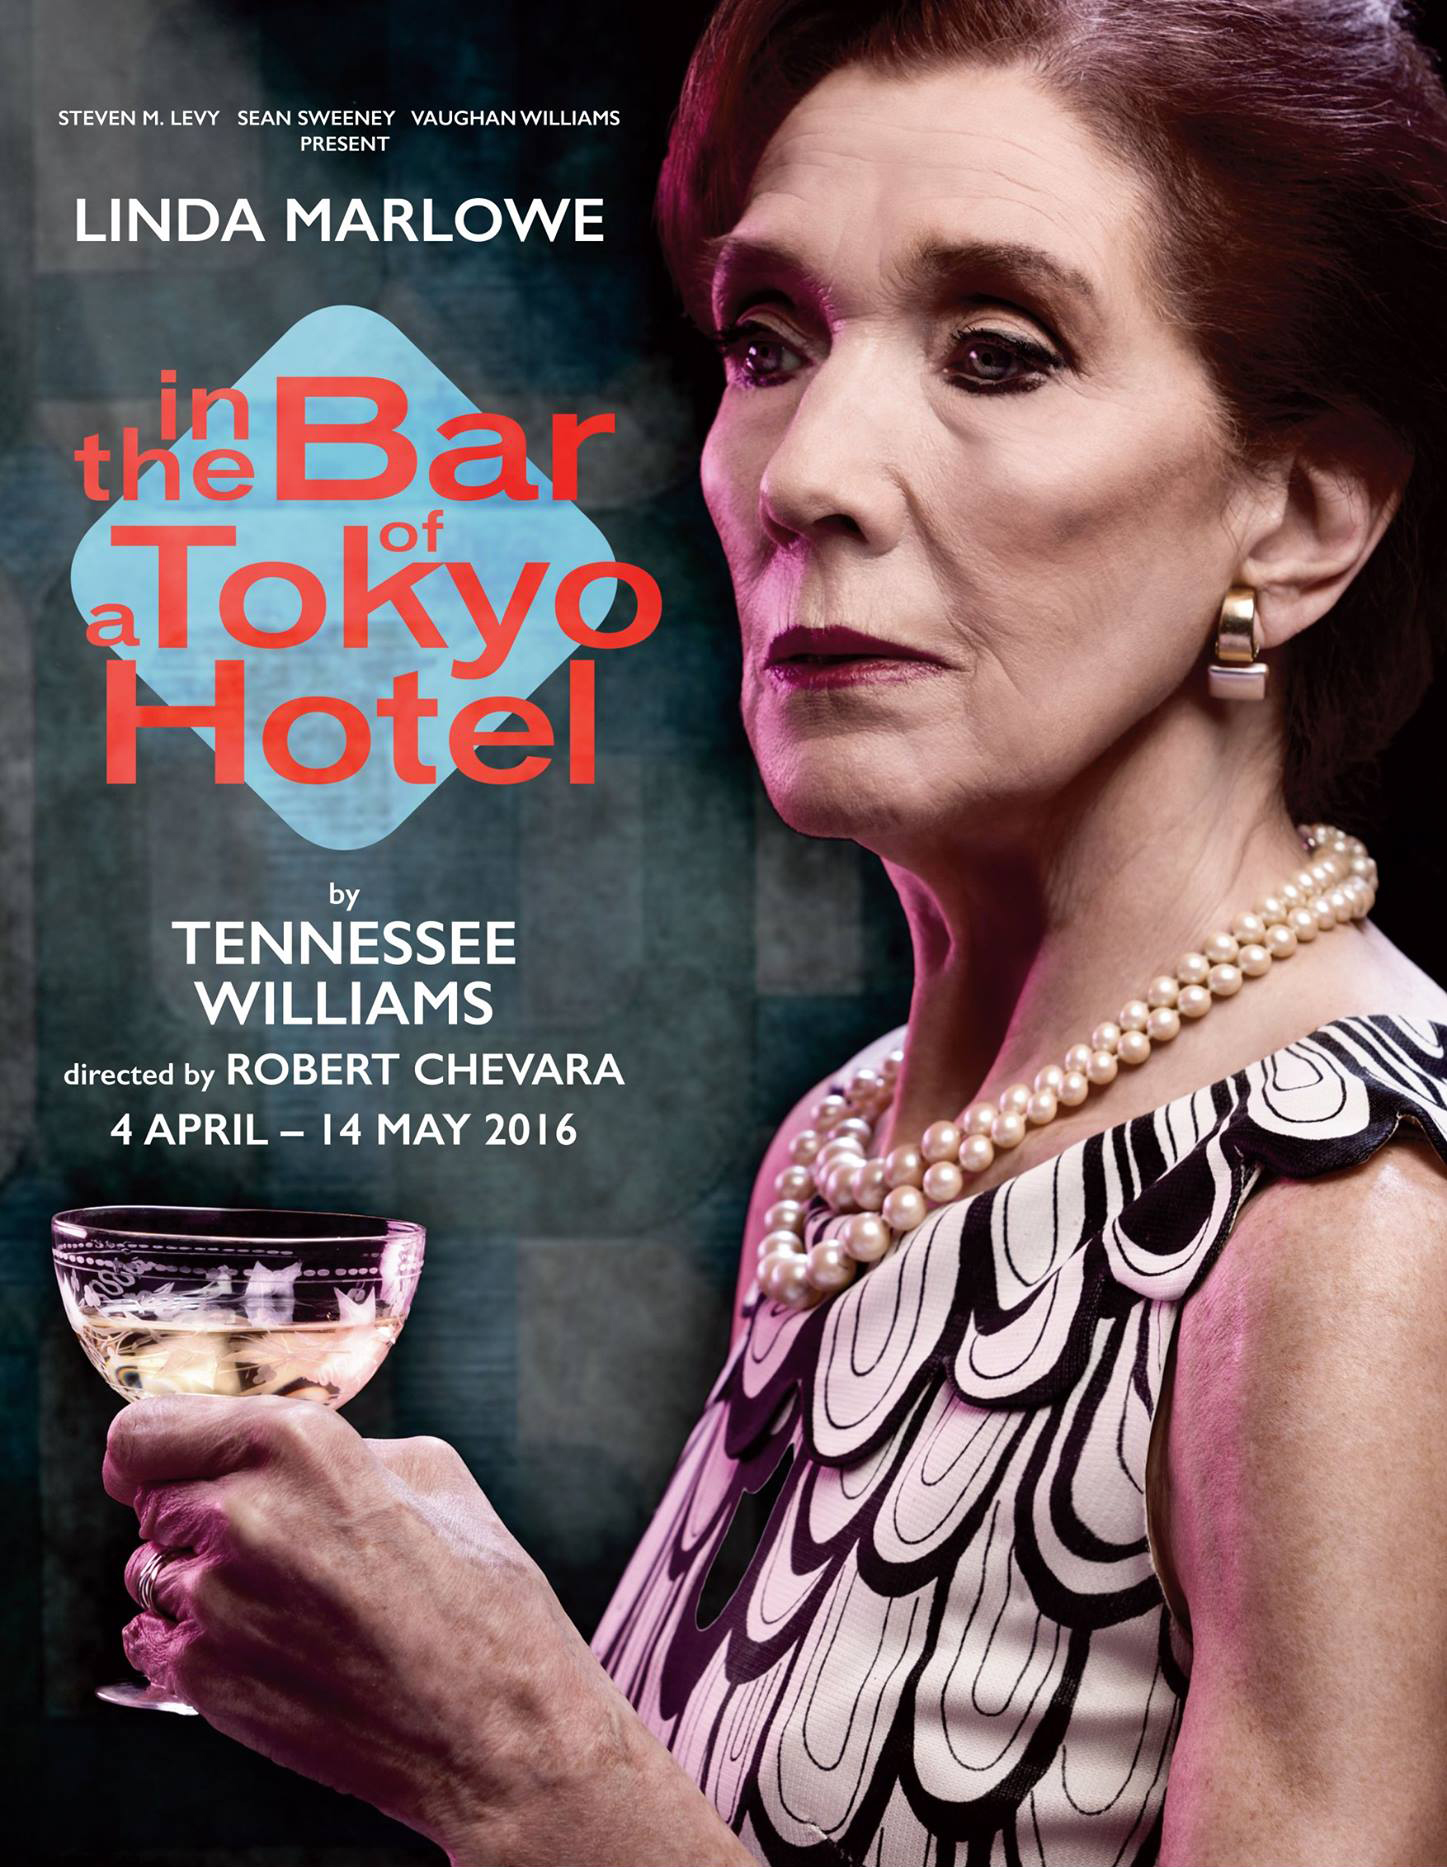 Linda Marlow In The Bar of A Tokyo Hotel